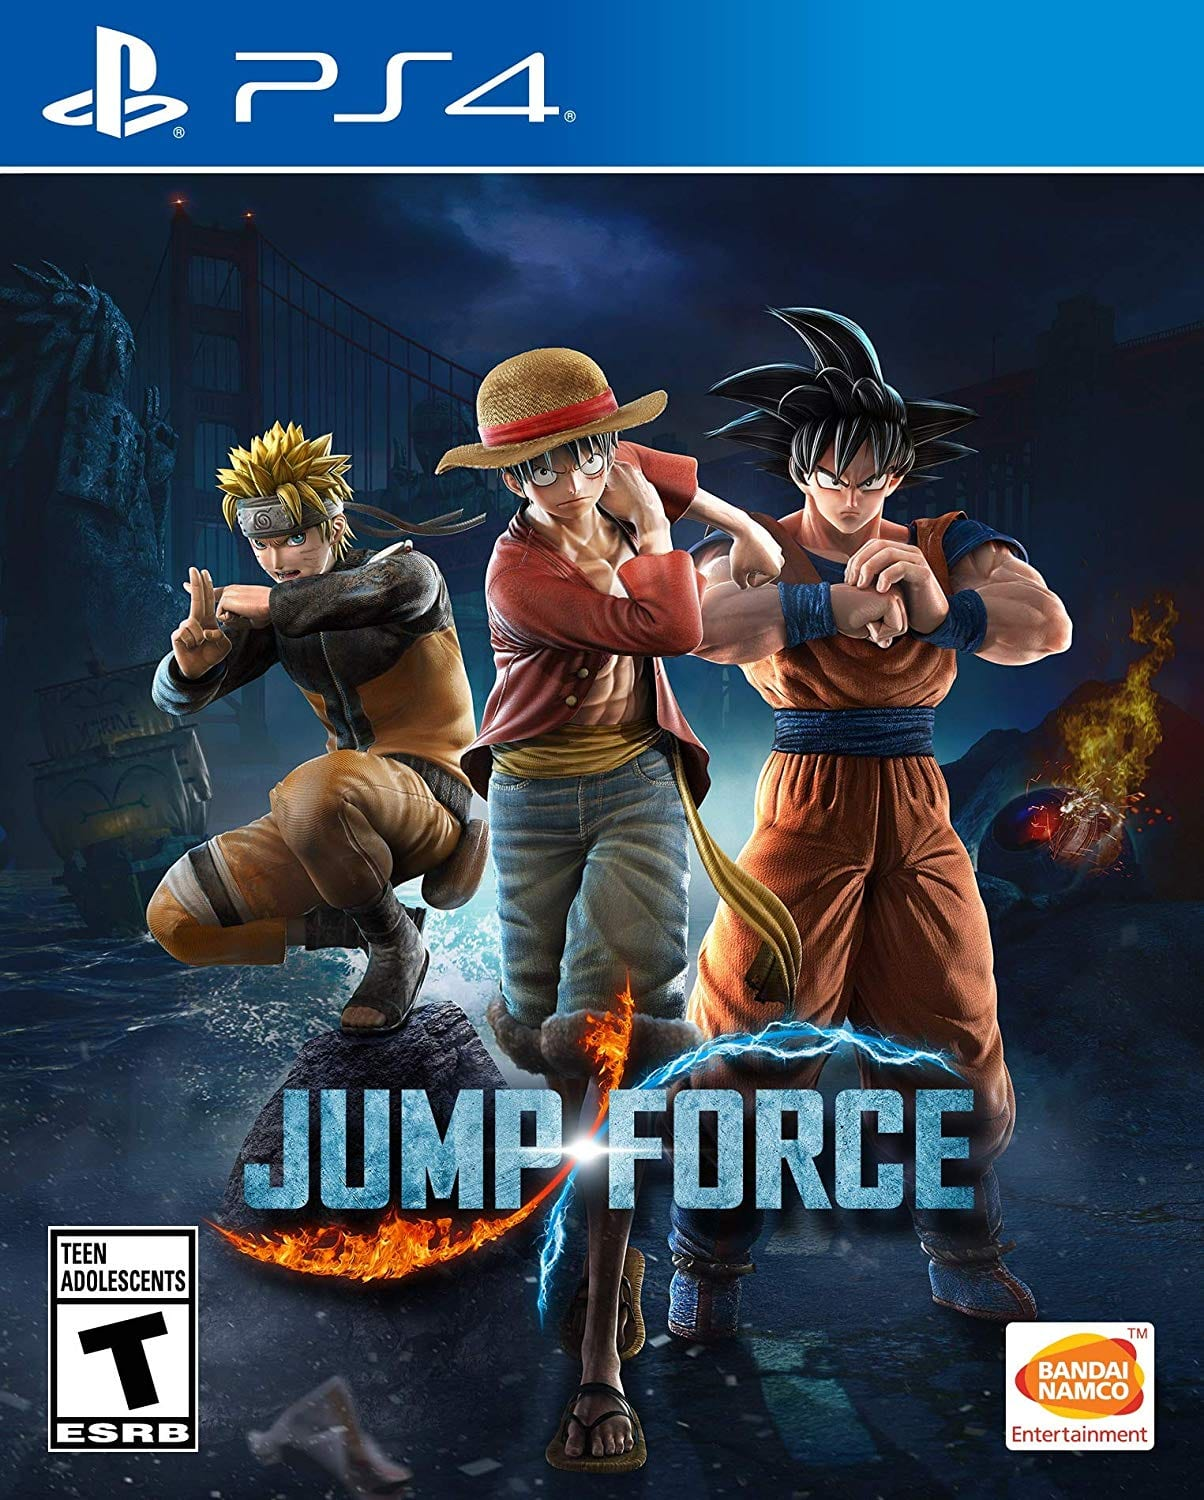 YMMV - Clearance video games in Walmart, Jump force ps4 $5, Ni no kuni switch $10